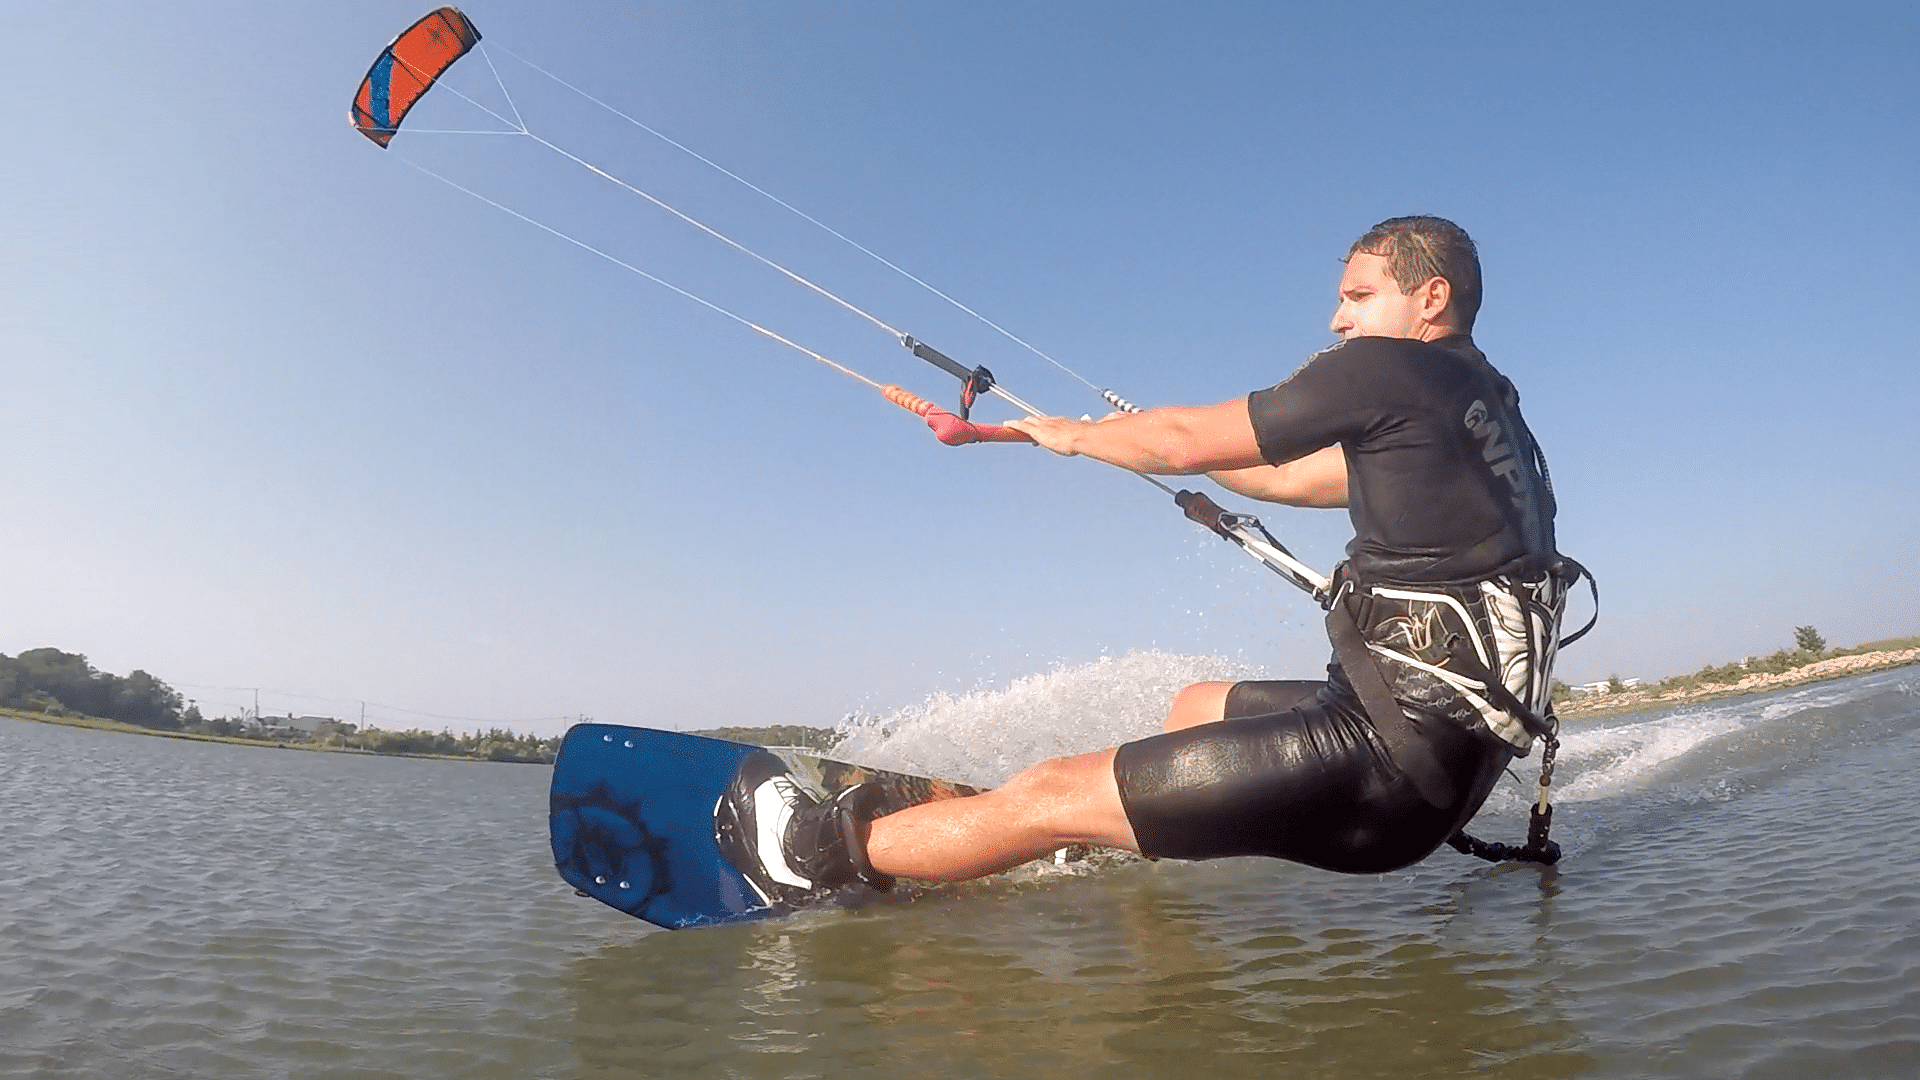 Spencer Kiteboarding at the Greenport Jetty in Long Island, New York